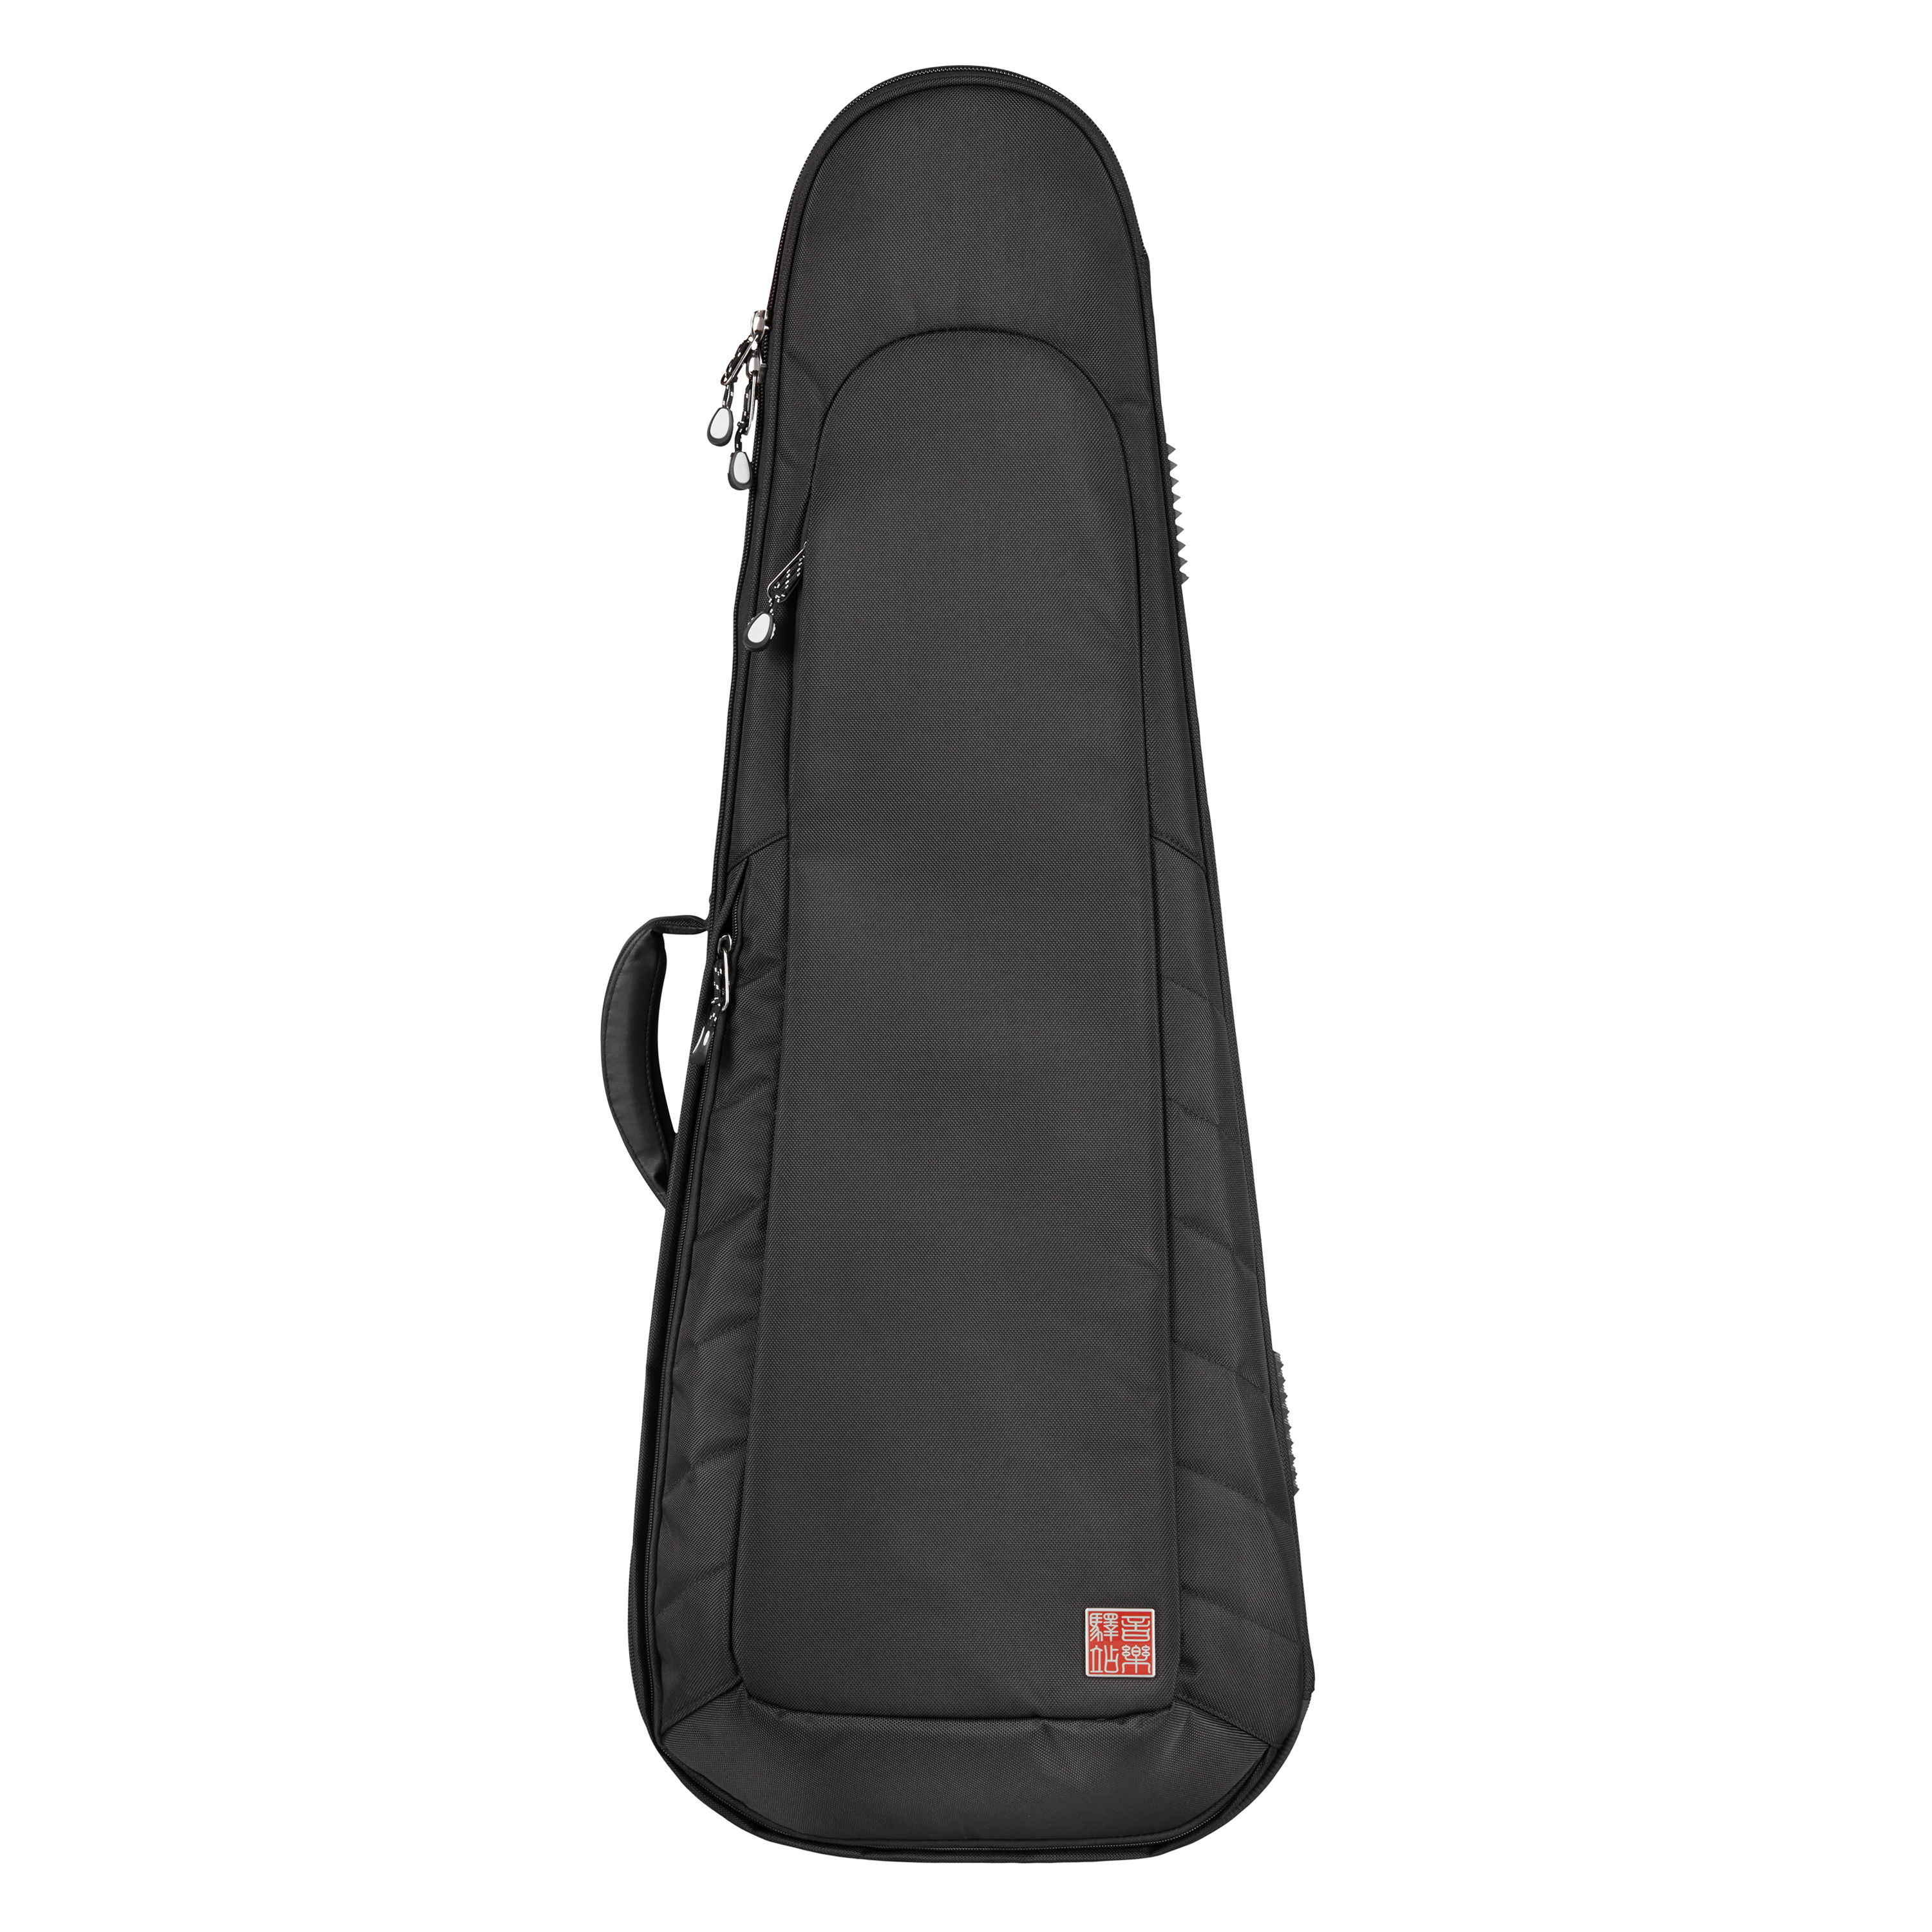 Music Area Electric Guitar Gig Bag ABS 360-Degree ALL-ROUND Protection Waterproof Black Soft Guitar Case Premium Quality  AA31 12mm waterproof soprano concert ukulele bag case backpack 23 24 26 inch ukelele beige mini guitar accessories gig pu leather